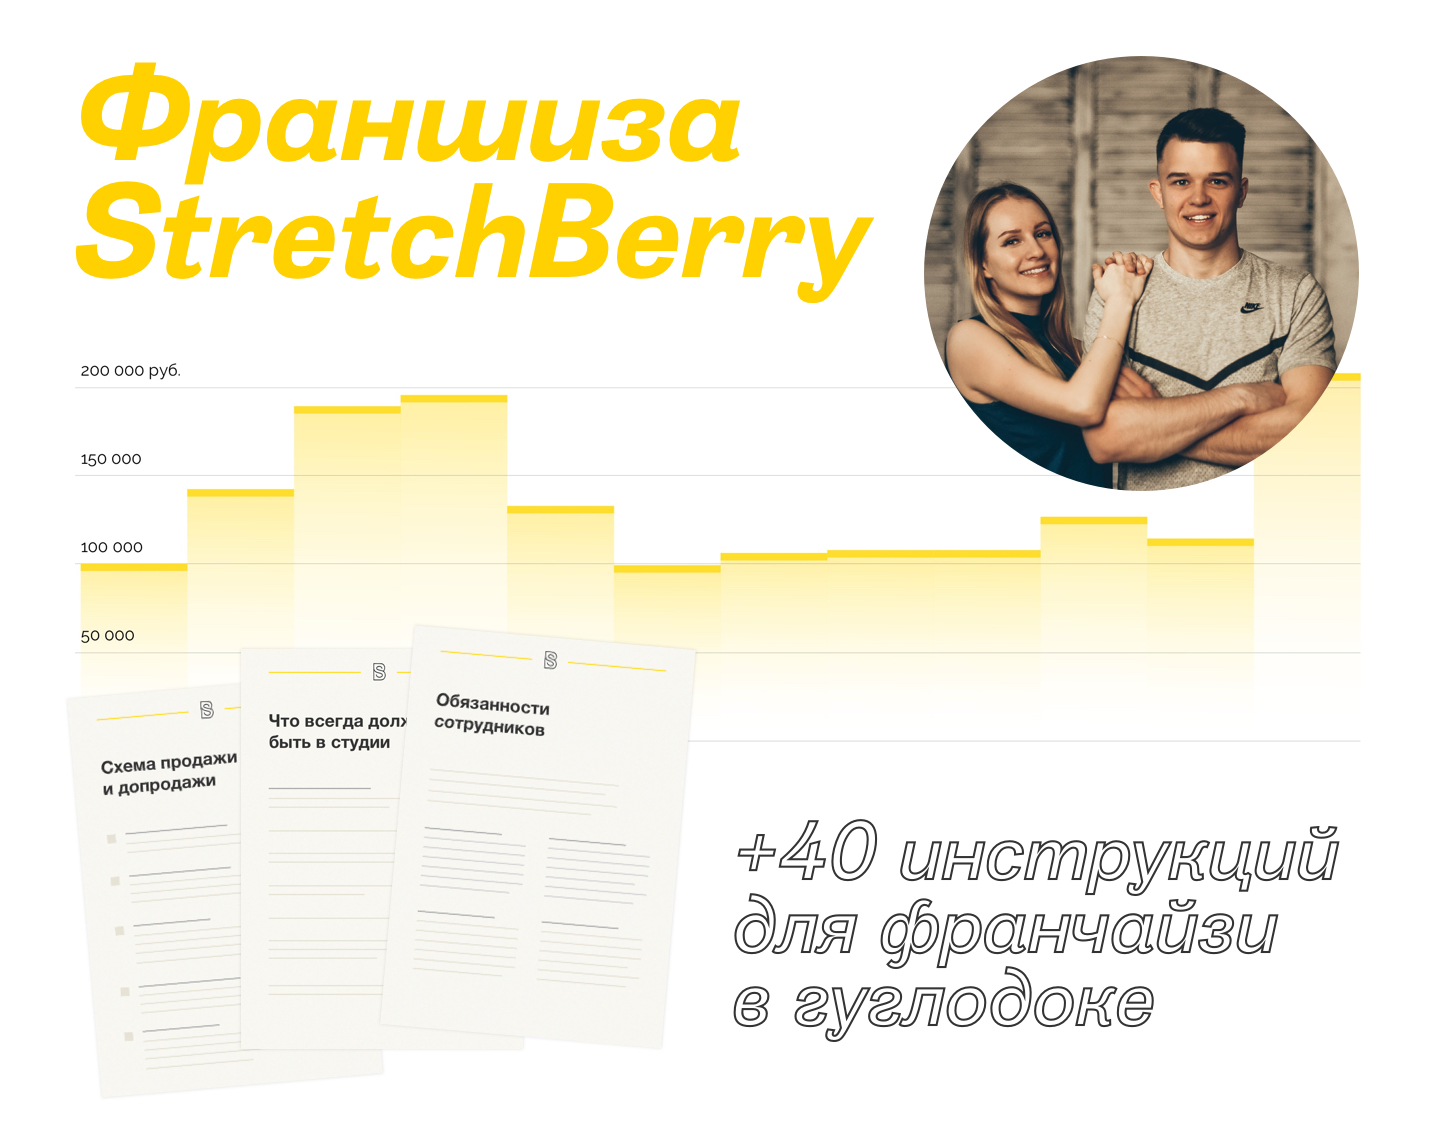 Презентация франшизы StretchBerry картинка